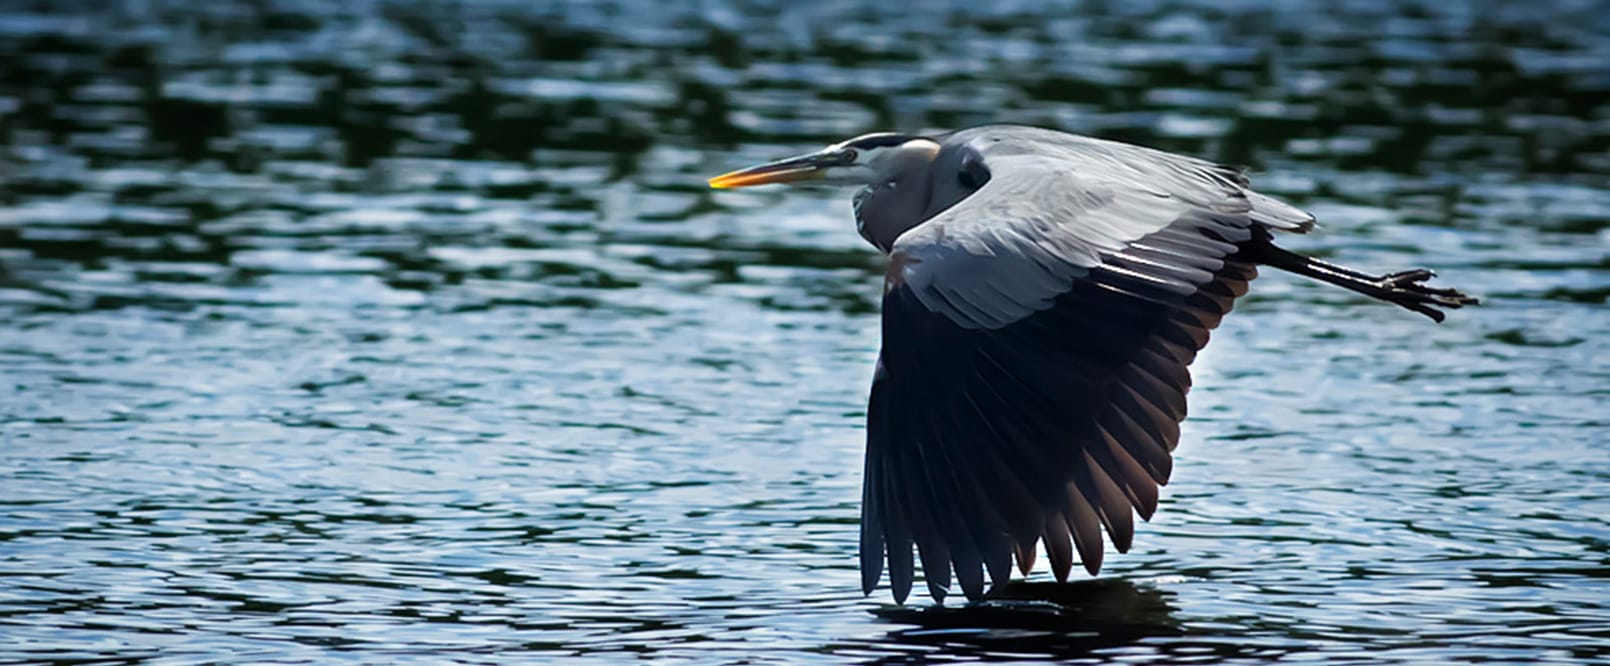 image of bird flying over water